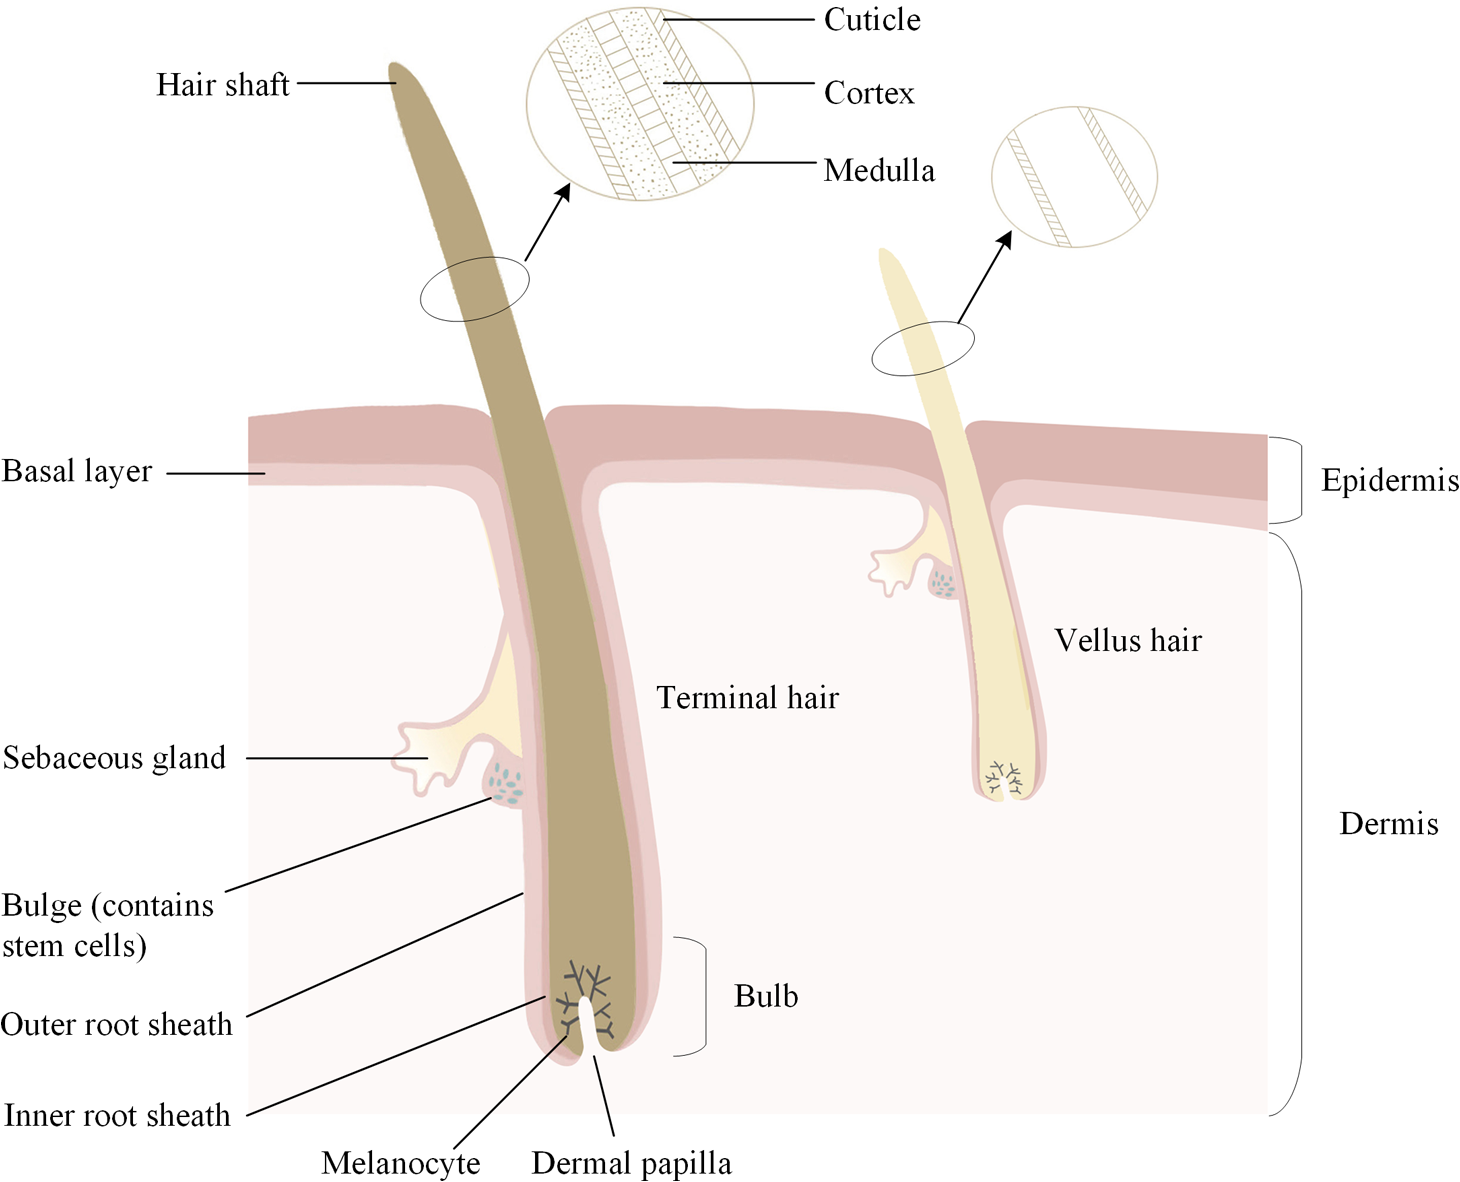 Review Of Human Hair Optical Properties In Possible Relation To Block Diagram Ebooks Schematic Skin Layers Containing Terminal And Vellus Follicle